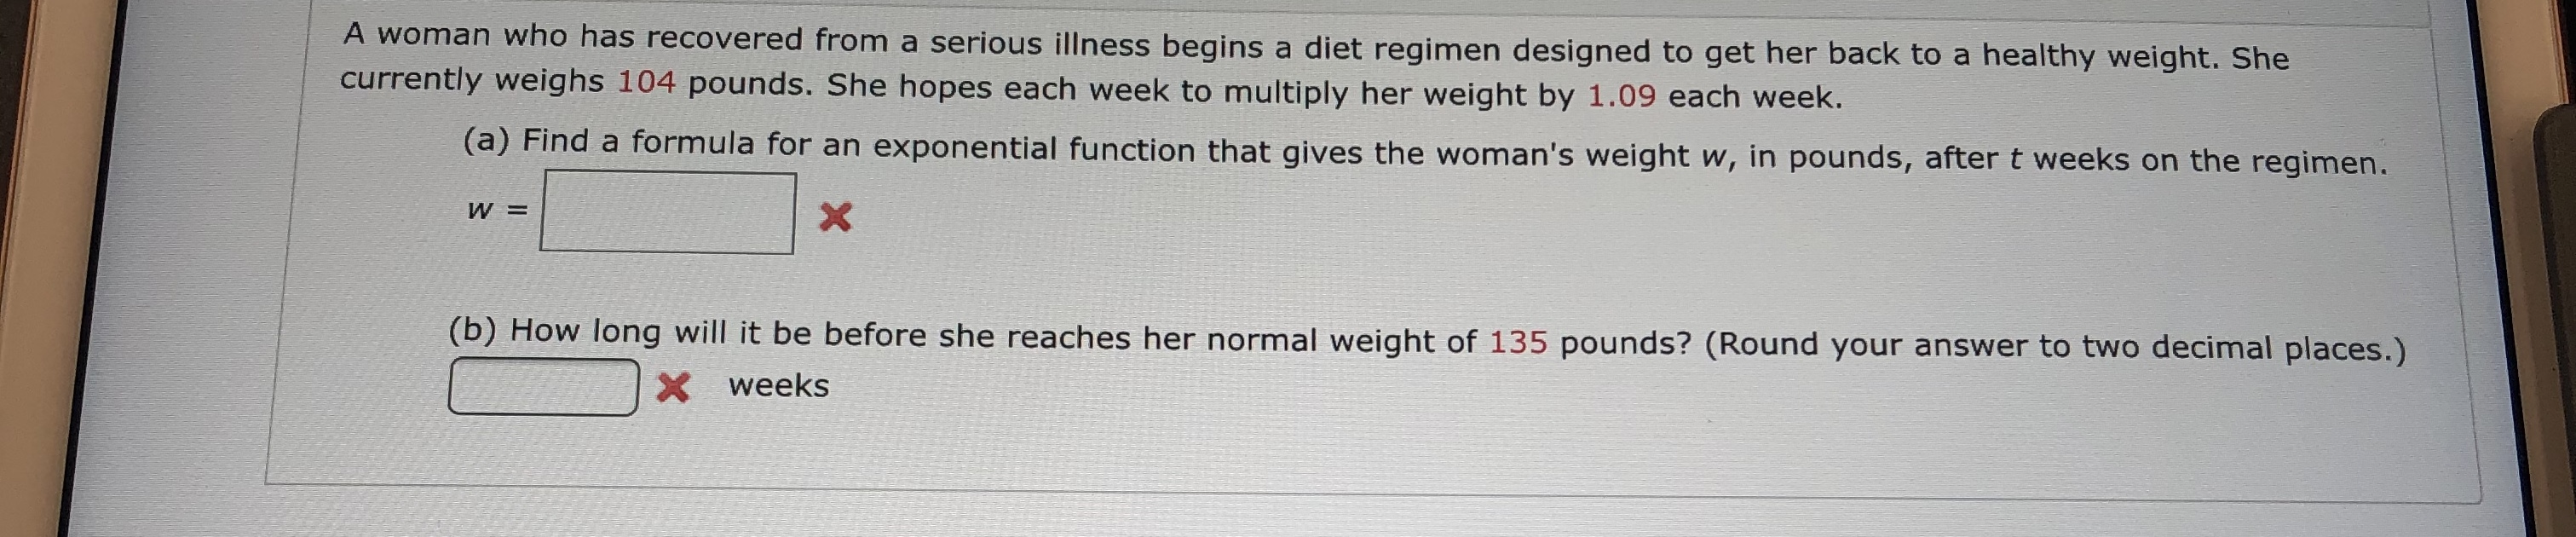 A woman who has recovered from a serious illness begins a diet regimen designed to get her back to a healthy weight. She currently weighs 104 pounds. She hopes each week to multiply her weight by 1.09 each week. (a) Find a formula for an exponential function that gives the woman's weight w, in pounds, after t weeks on the regimen. W = X (b) How long will it be before she reaches her normal weight of 135 pounds? (Round your answer to two decimal places.) Xweeks